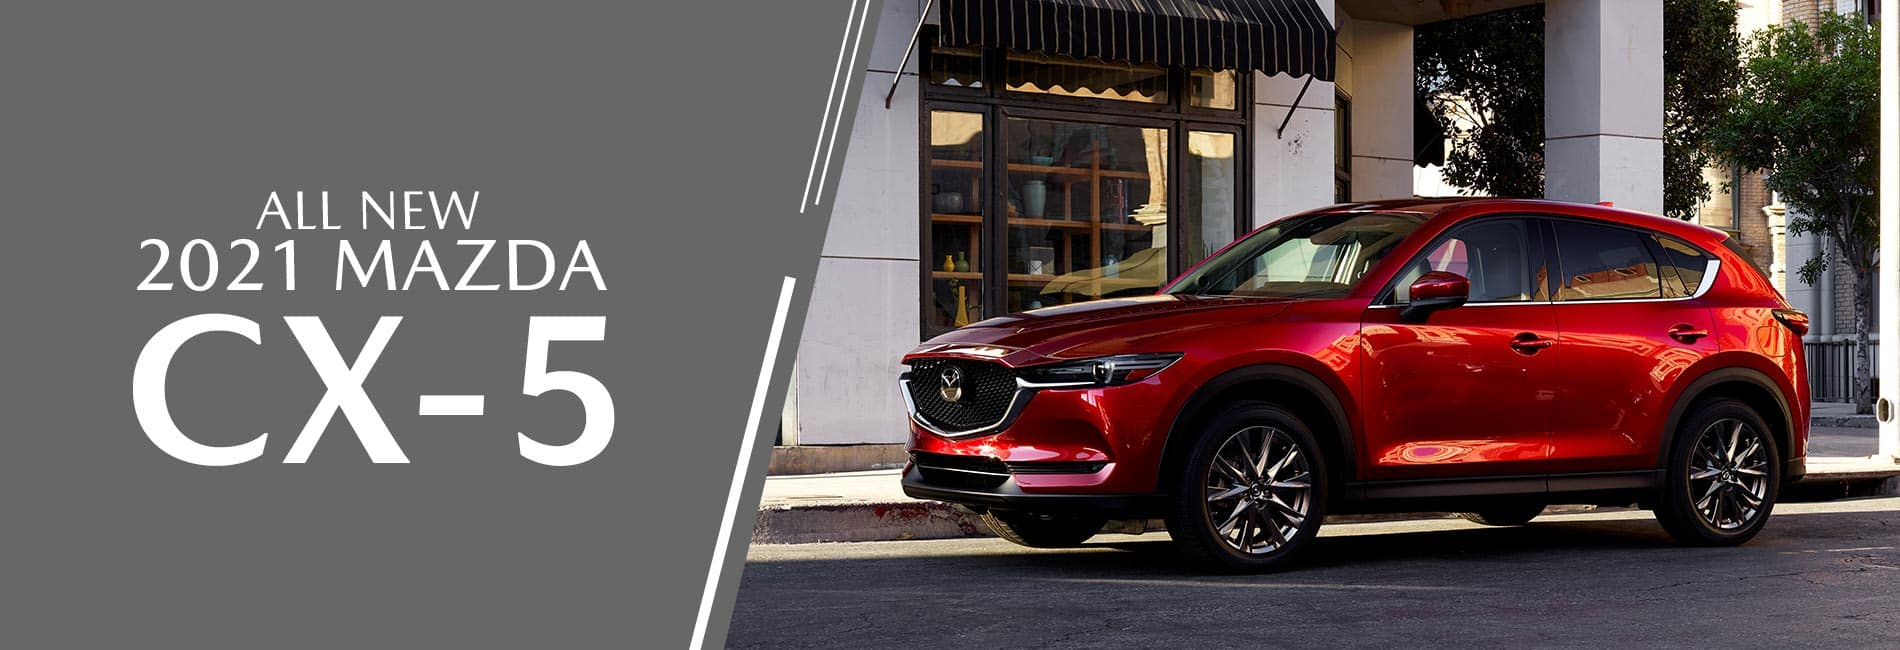 New 2021 mazda cx-5 available at Gunther in South, Florida